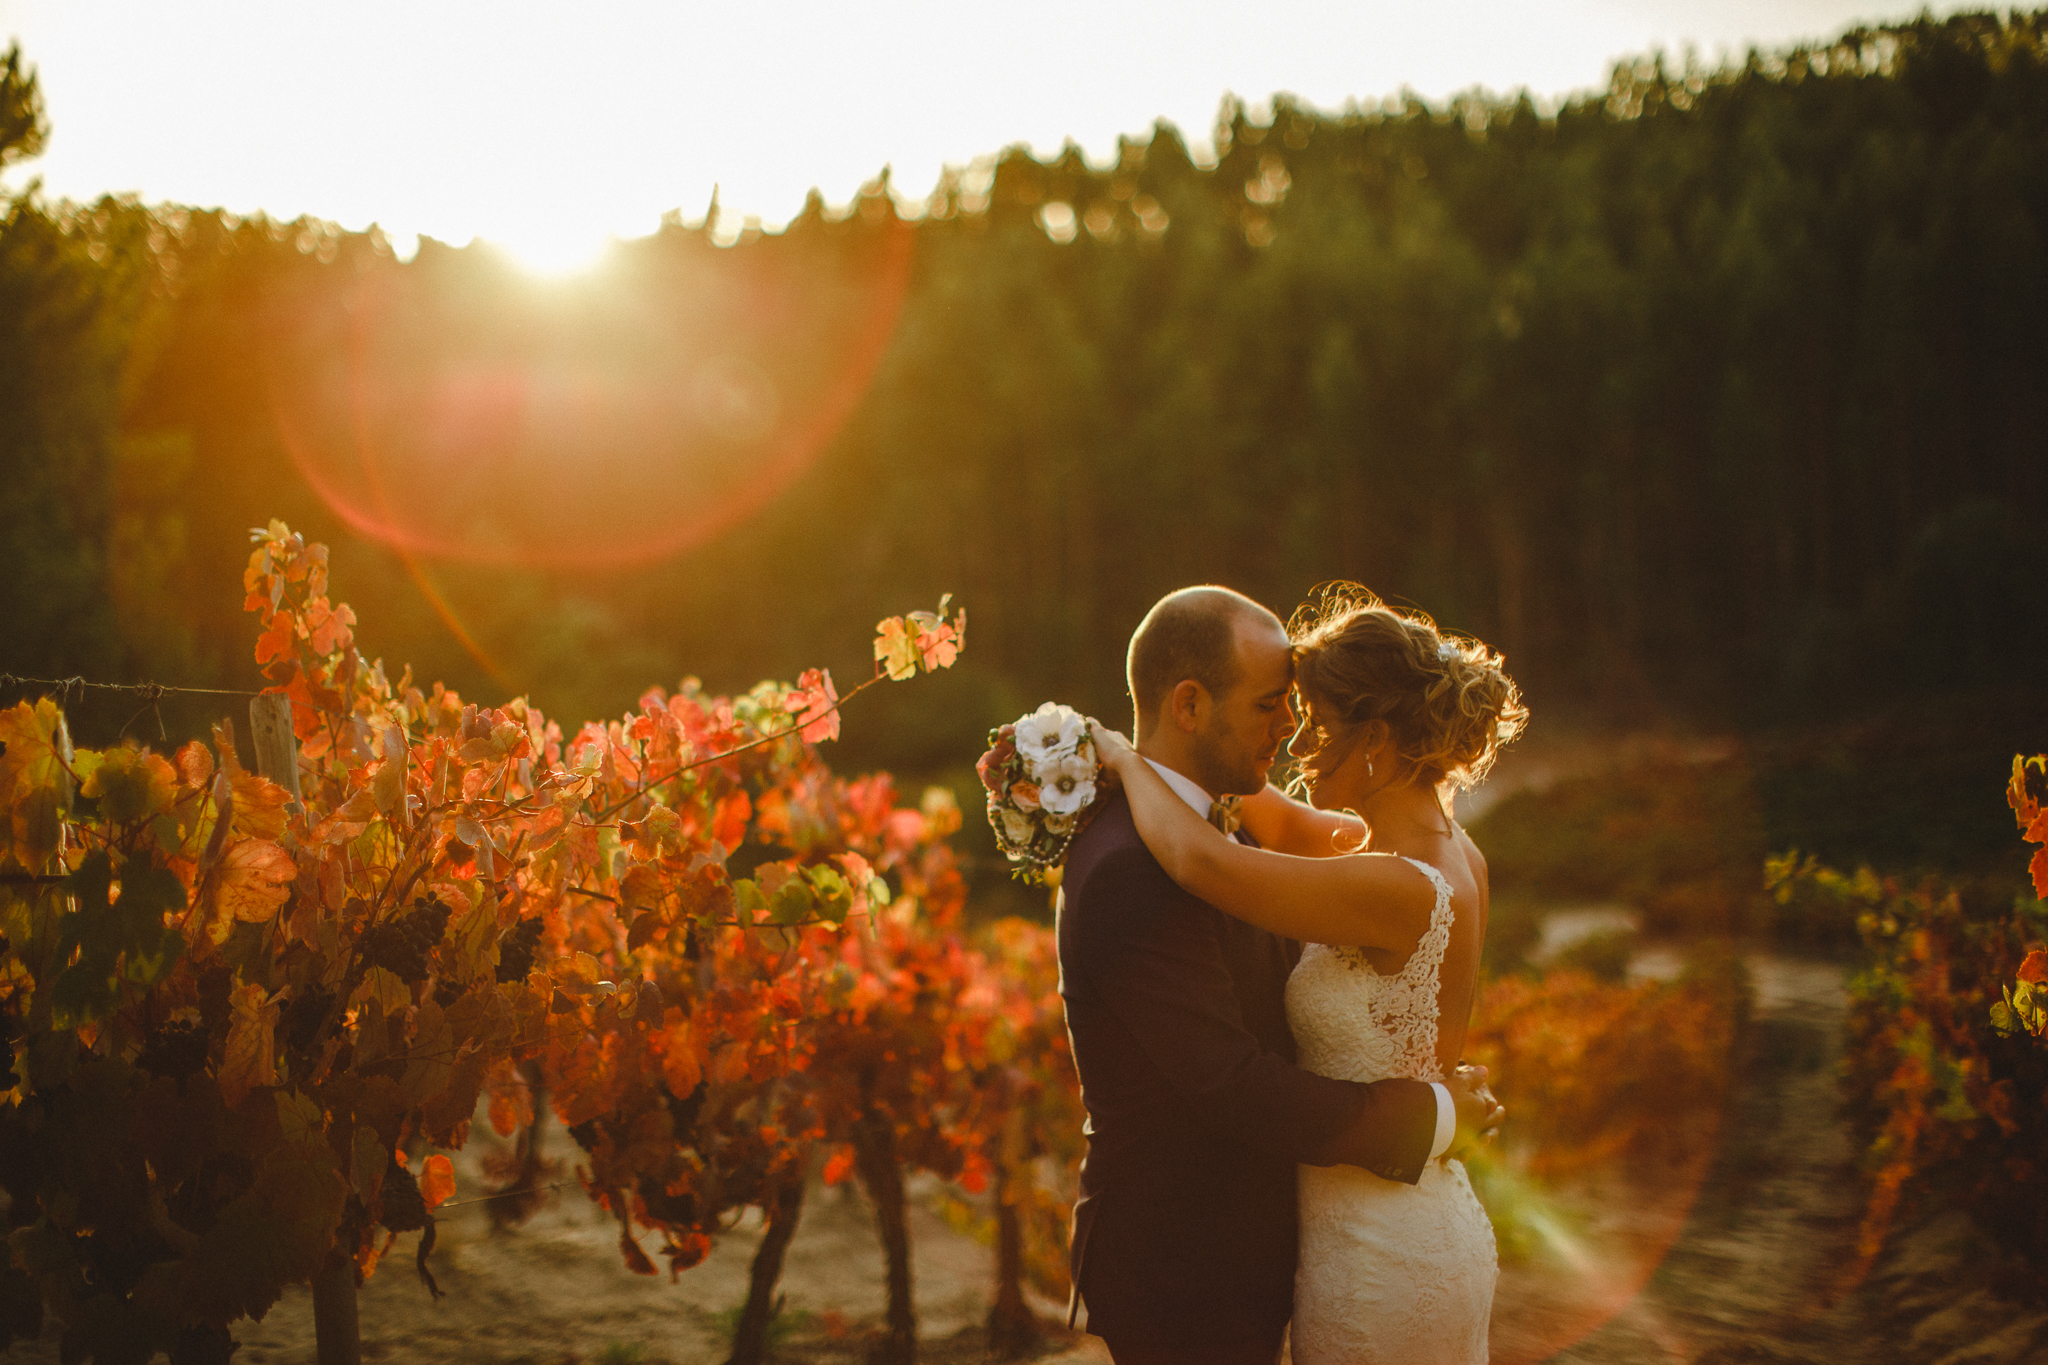 Bride and groom during their bridal photo shoot during sunset in the vineyards.